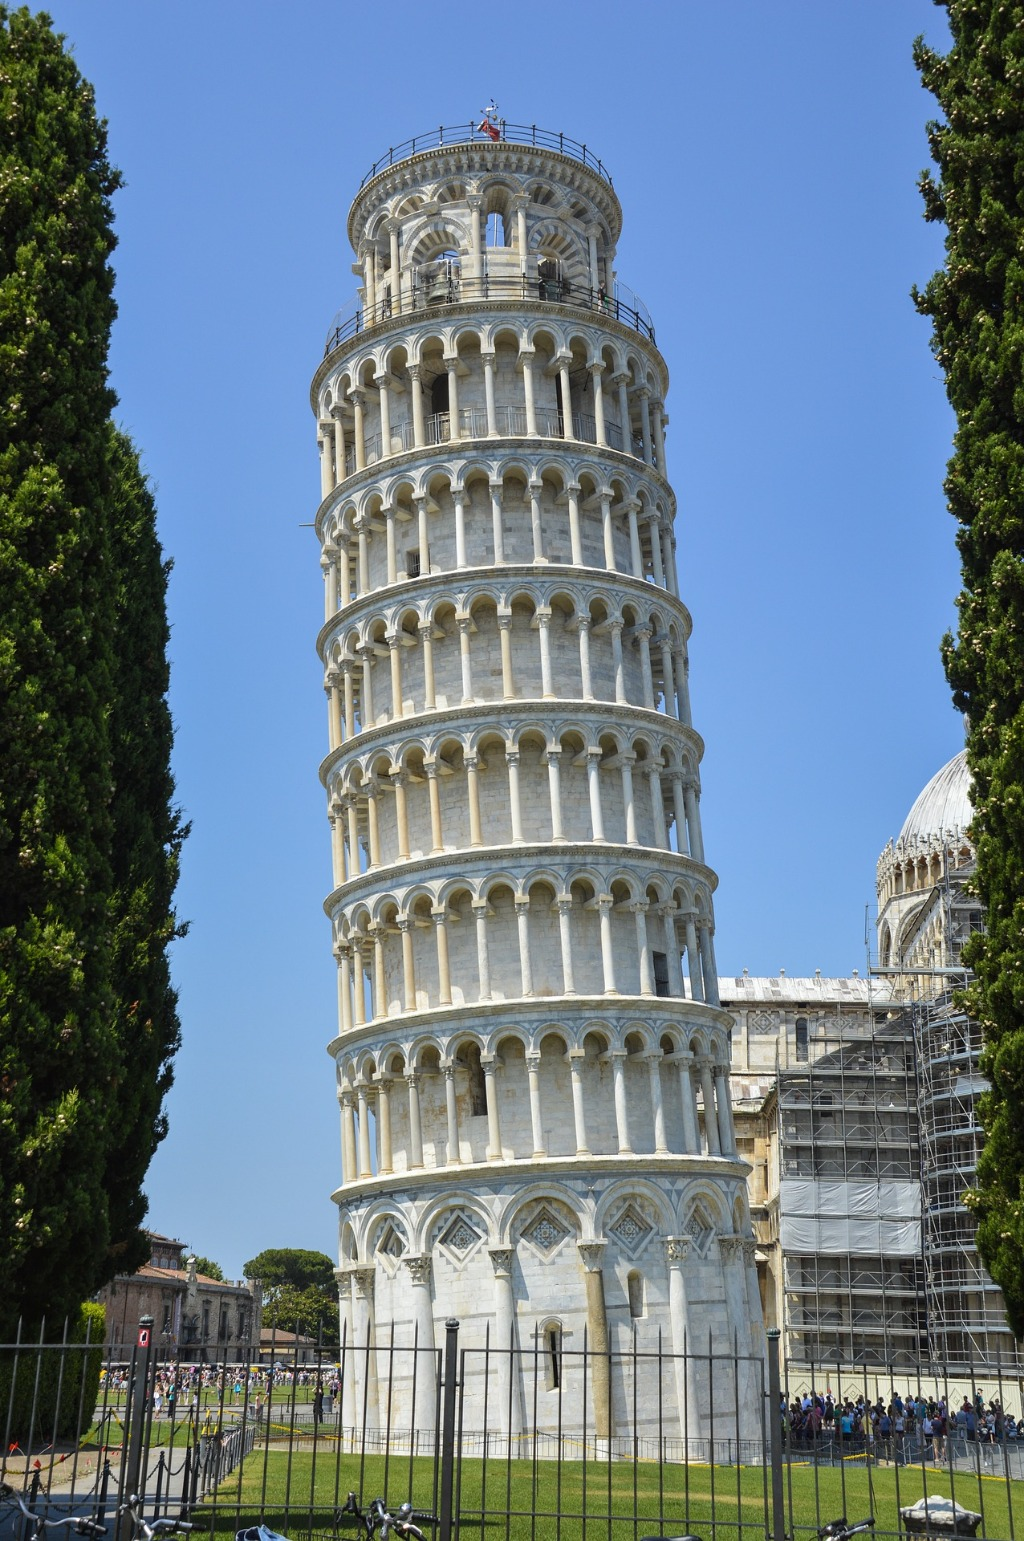 interesting facts about the leaning tower of pisa